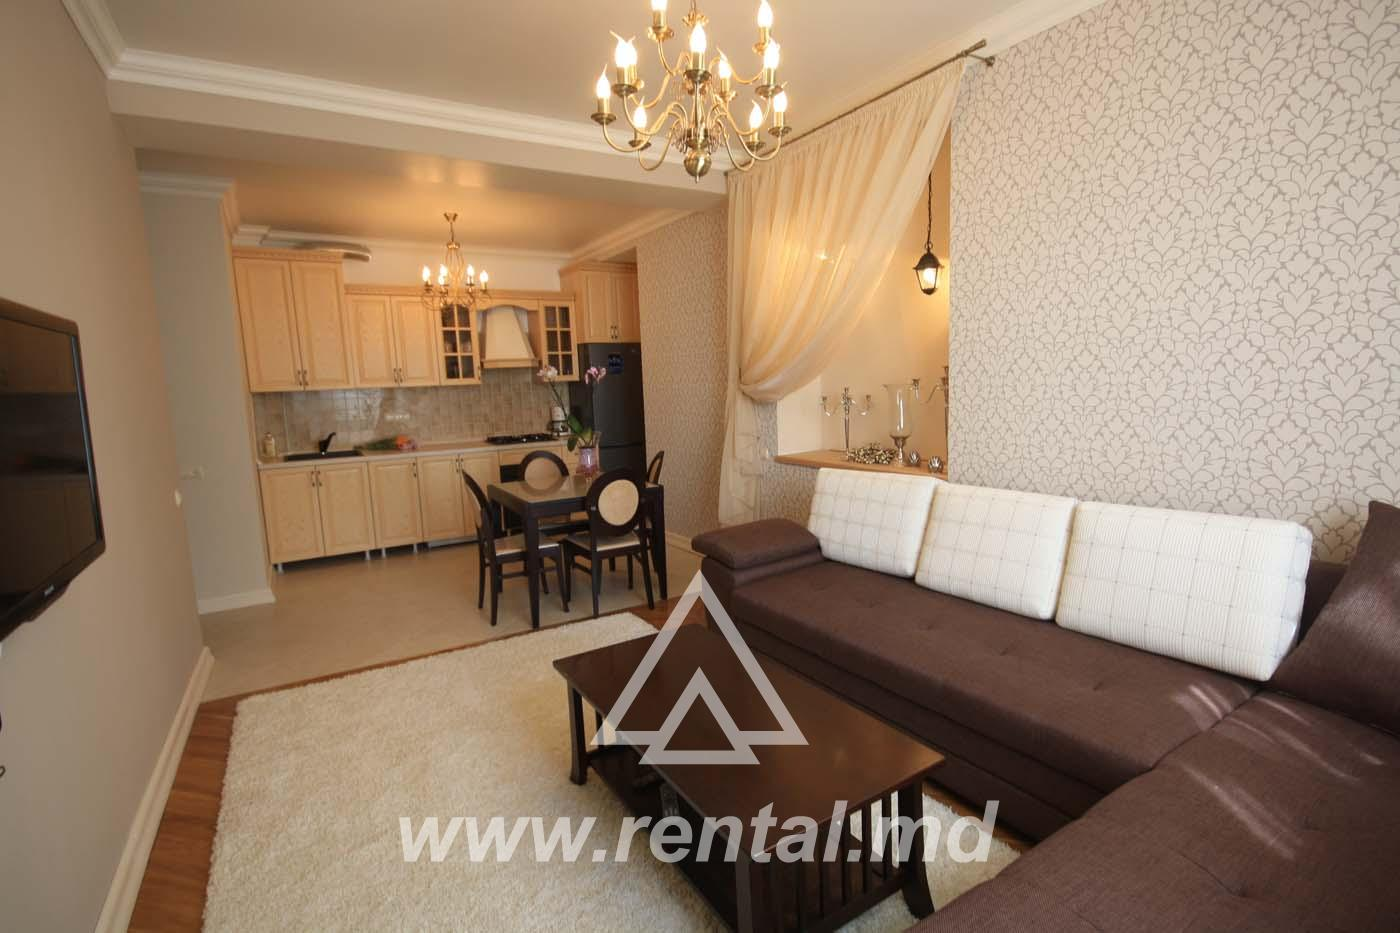 2-rooms apartment in Chisinau